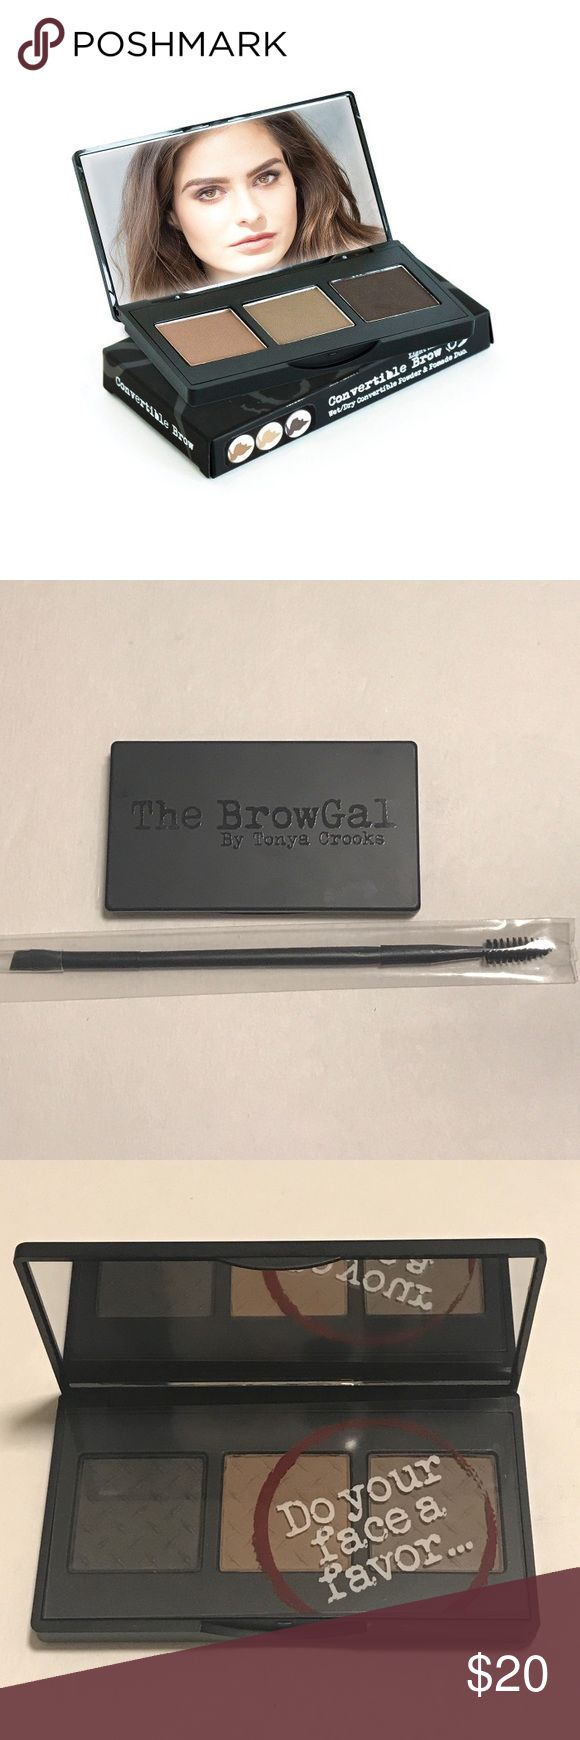 The BrowGal Eyebrow Kit Brand new! Includes duel ended eyebrow brush/spooling. Color: dark brown, taupe, light brown Makeup Eyebrow Filler